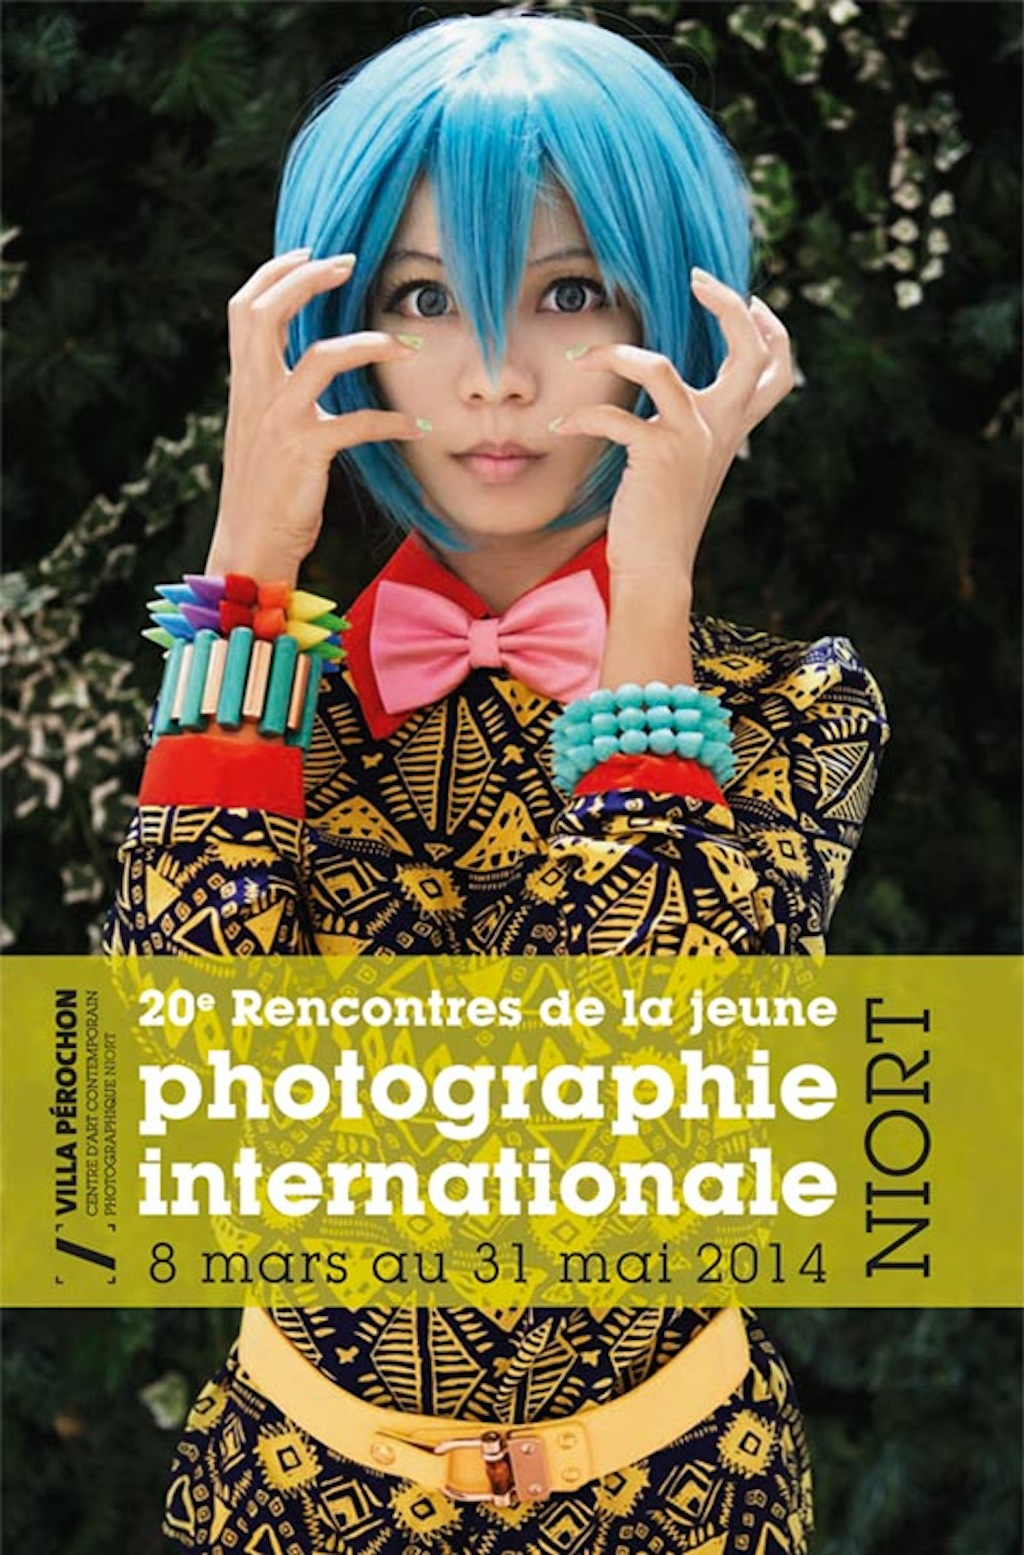 Rencontres internationales de la photographie 2016